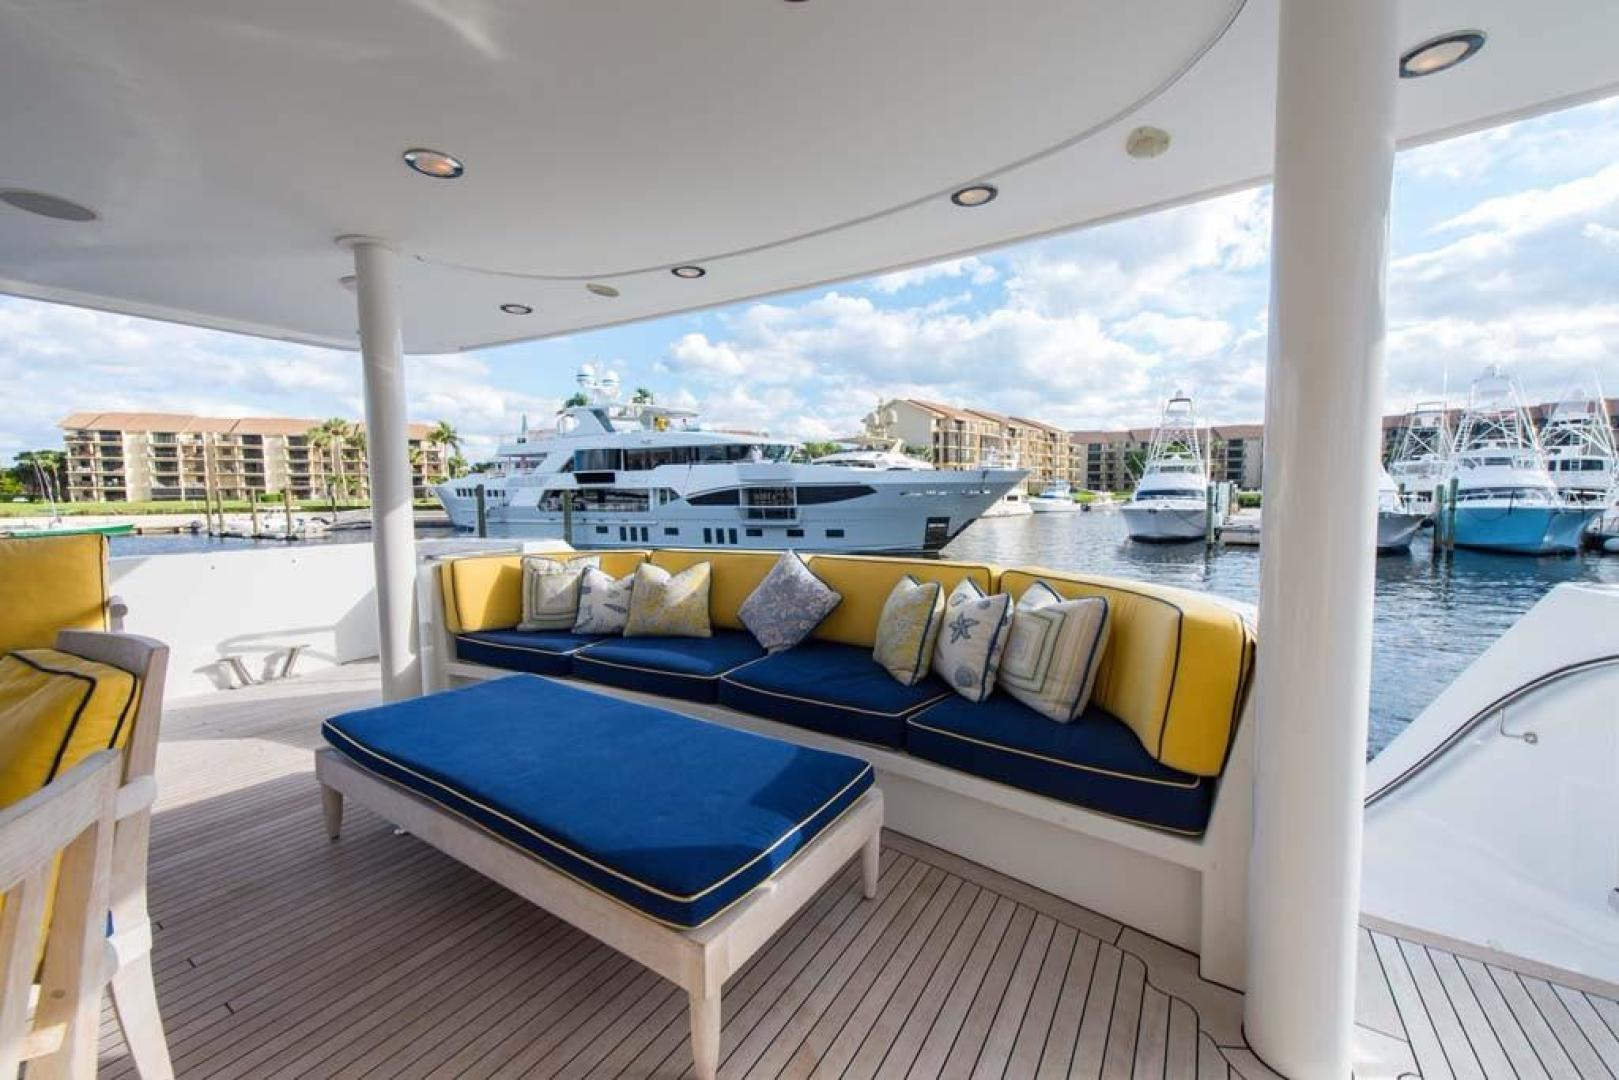 Westport-Tri-Deck-2003-Vision-Jupiter-Florida-United-States-Aft-Deck-370700